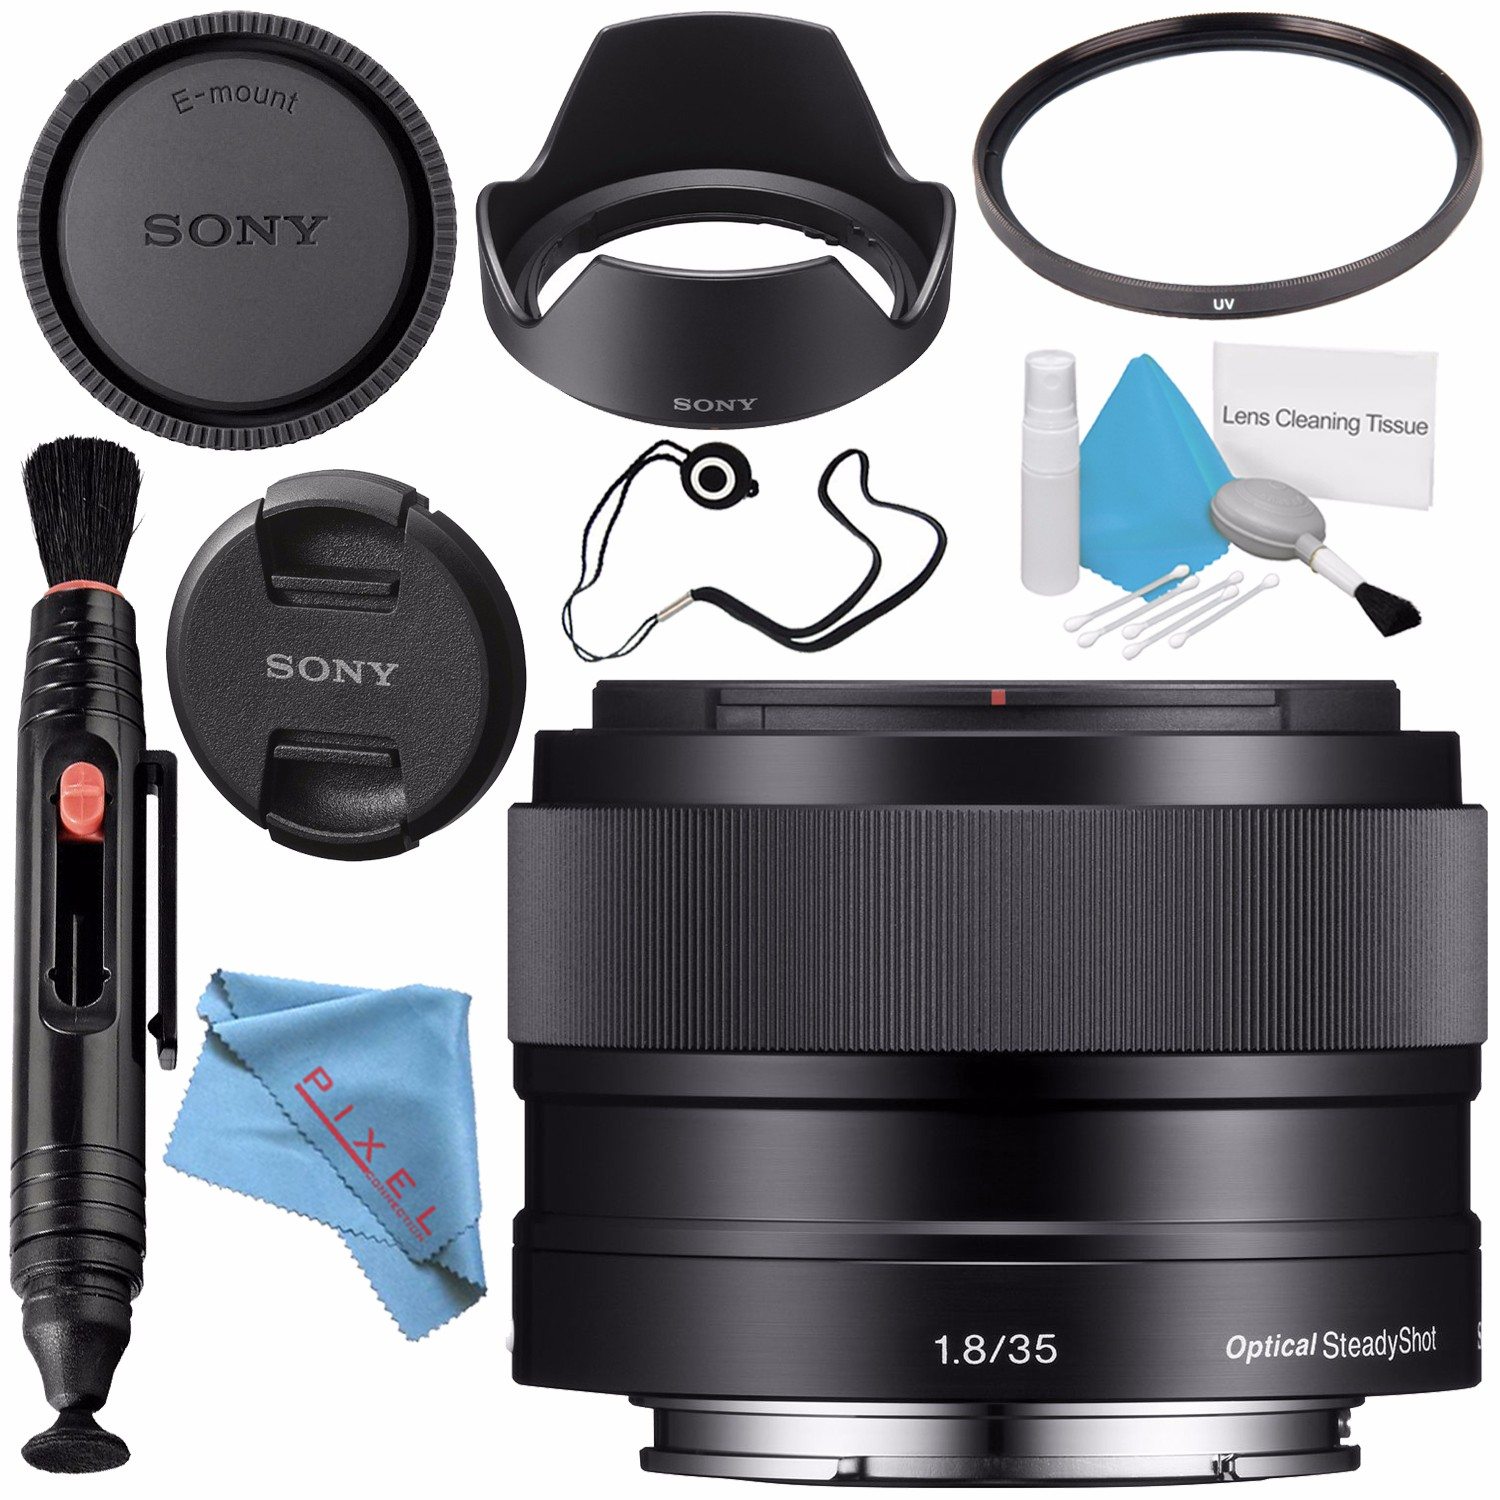 Sony E 35mm f/1.8 OSS Lens SEL35F18 + 49mm 3 Piece Filter Kit + 49mm Macro Close Up Kit + 256GB SDXC Card + Lens Pen Cleaner + Fibercloth + Lens Capkeeper + Deluxe Cleaning Kit Bundle